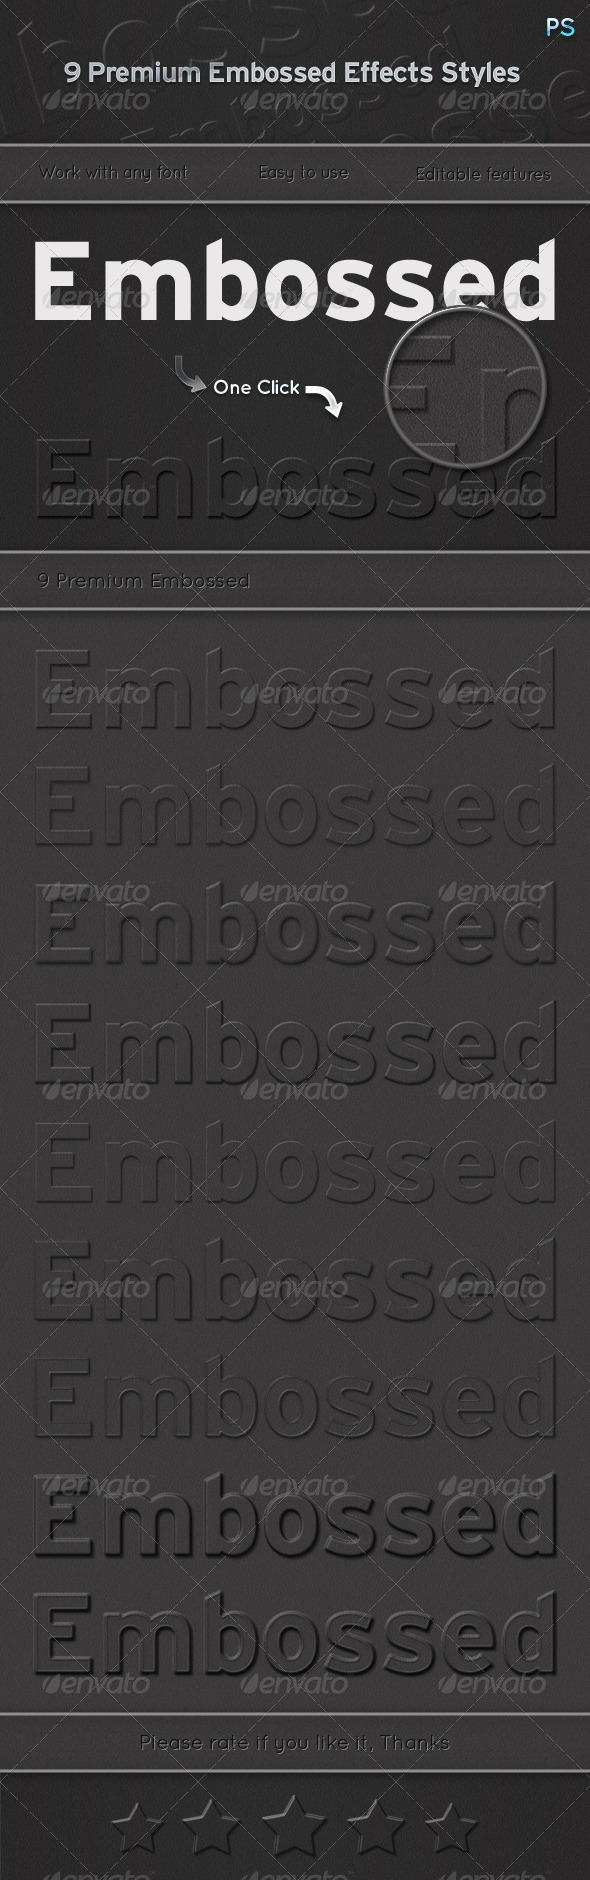 GraphicRiver 9 Premium Embossed Effects Styles 6492460